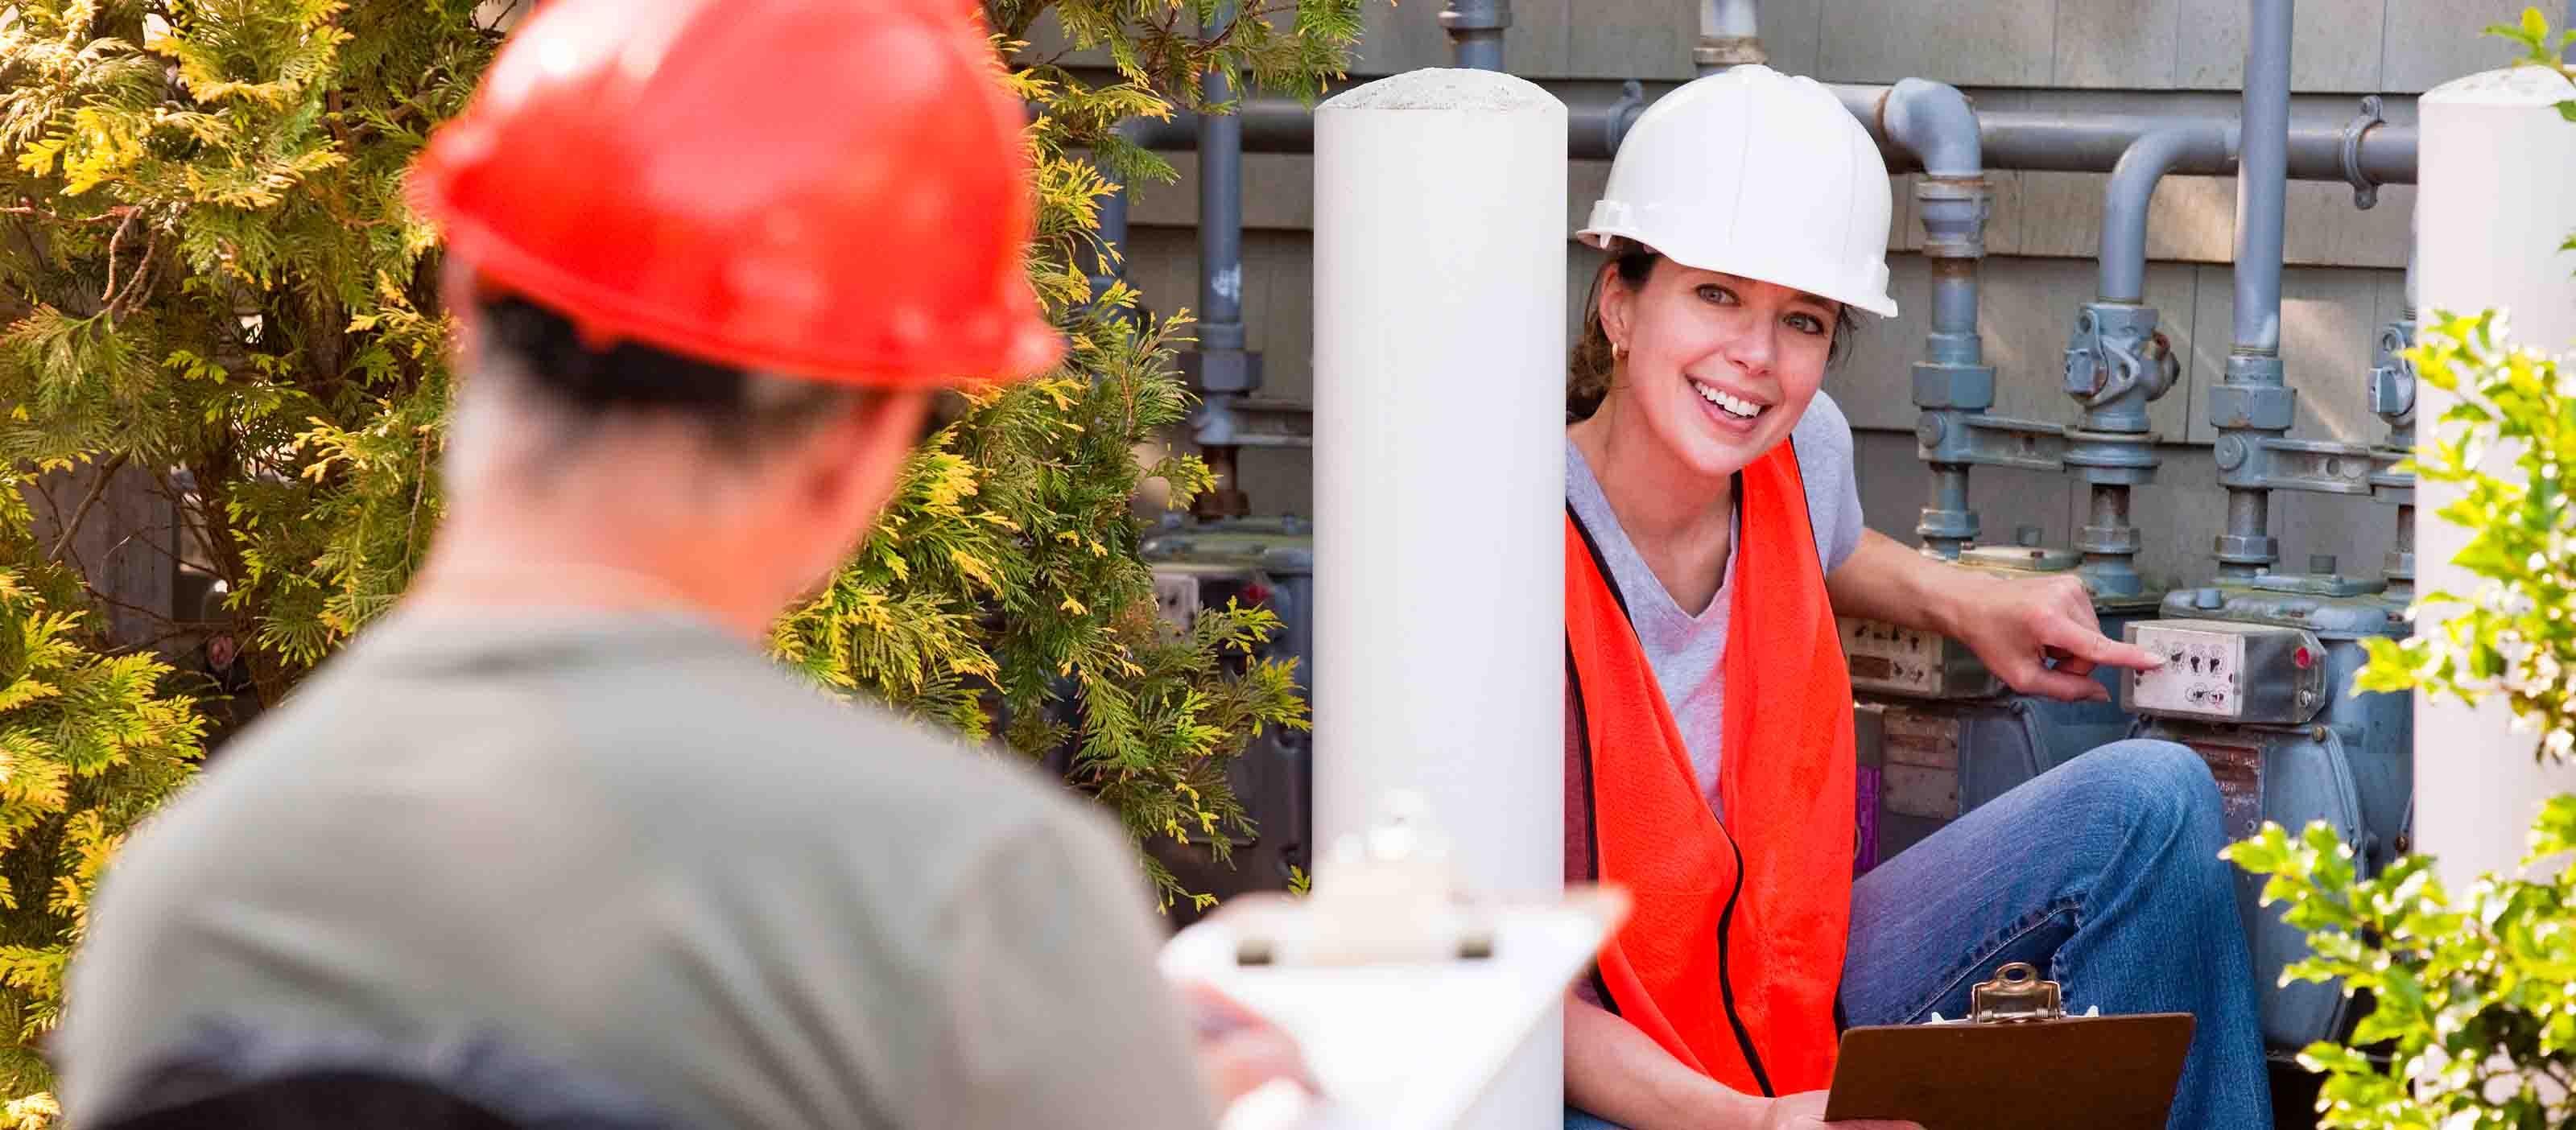 Gas Distribution Office provides geospatial assistance for gas distribution